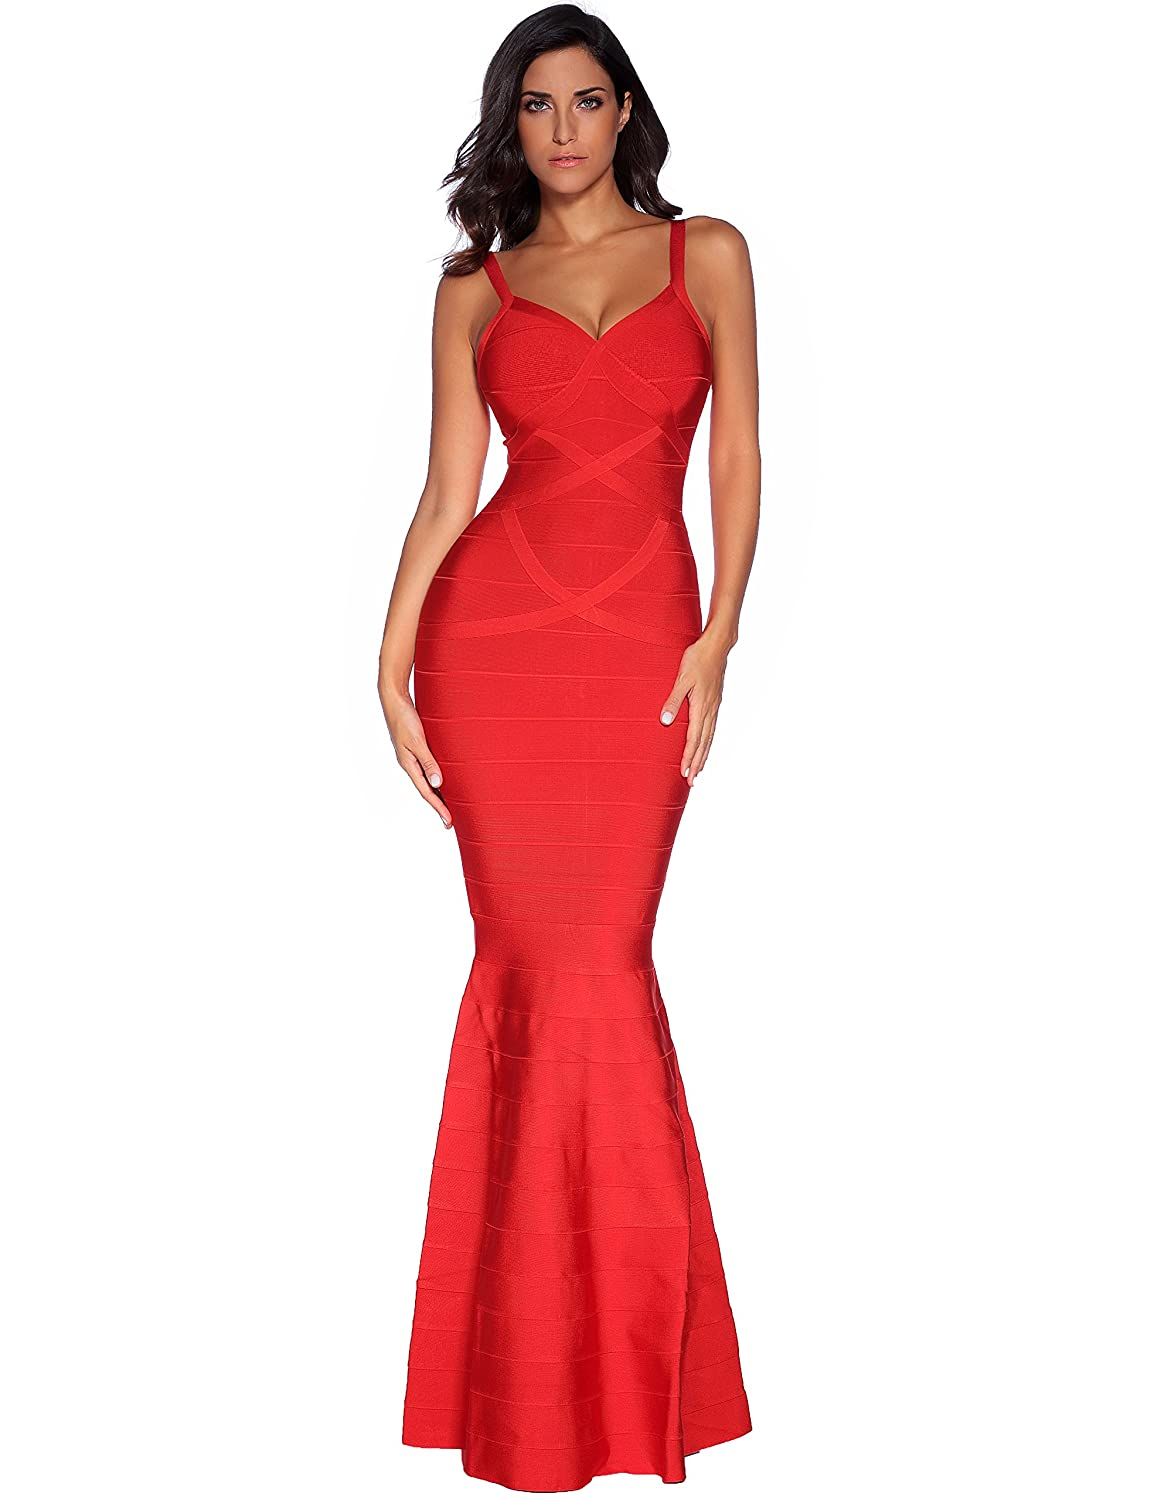 Meilun Women's Maxi Bandage Dress Fishtail Bodycon Formal Evening Dresses